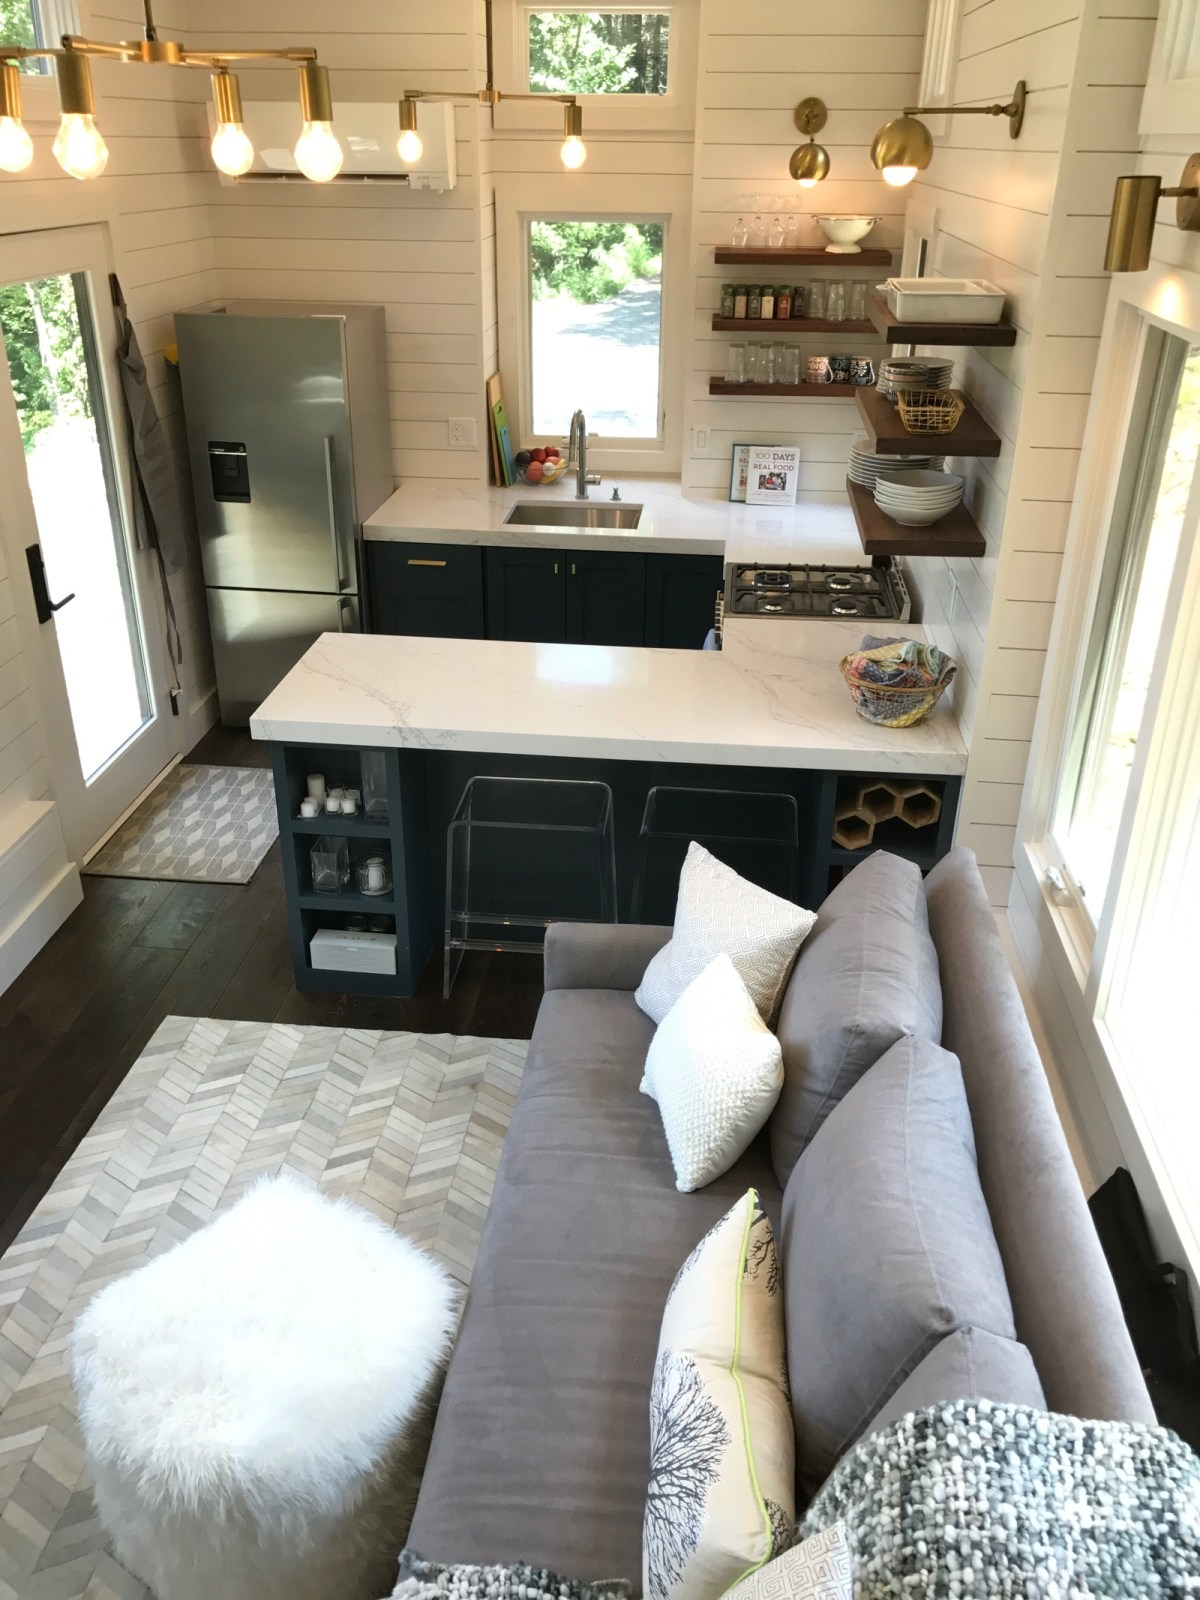 100 Days of Real Food Tiny House